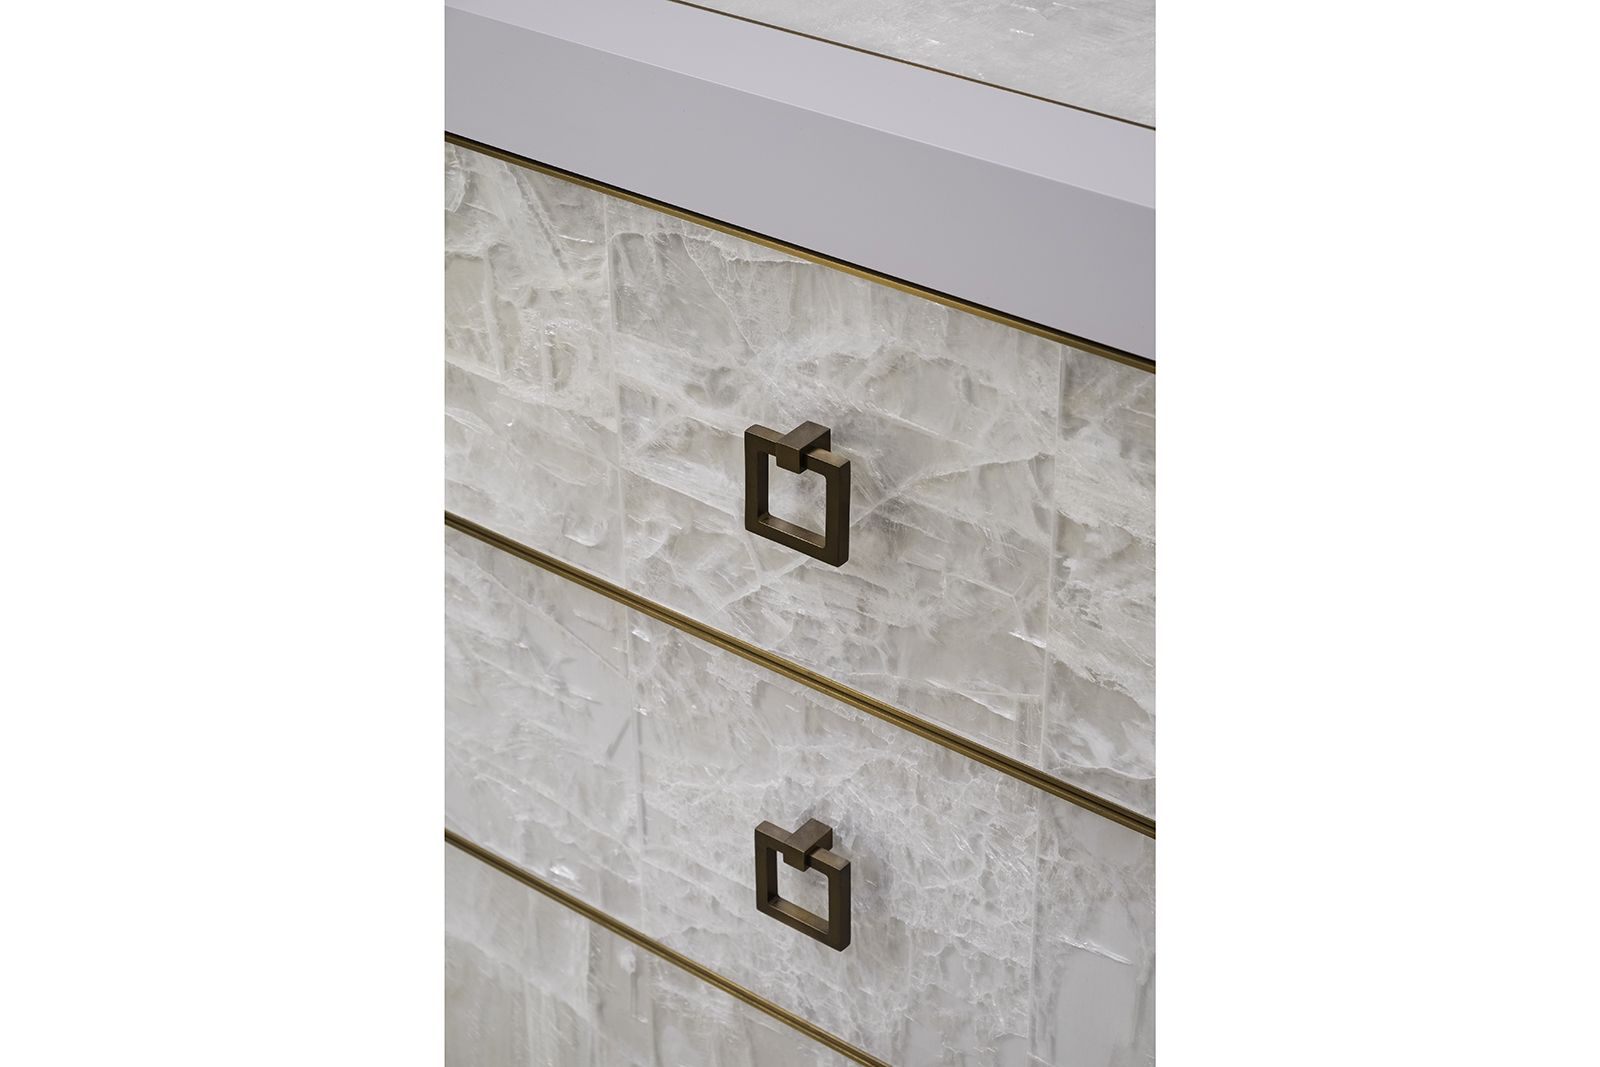 Sideboard Tv Lift sideboard w/ tv lift in gypsum, lacquer & bronze | gypsum furniture